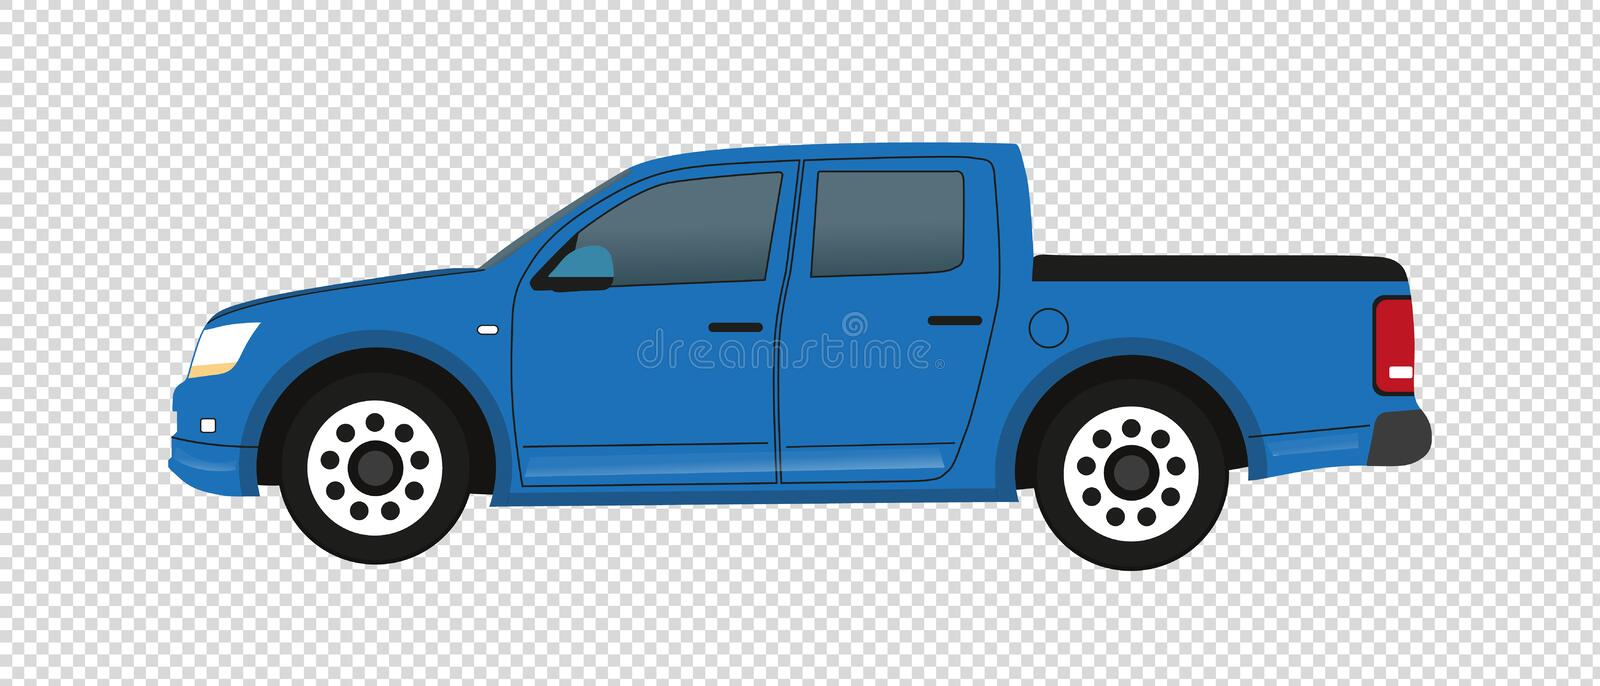 Camion pick-up bleu - illustration de vecteur - d'isolement sur le fond transparent illustration de vecteur